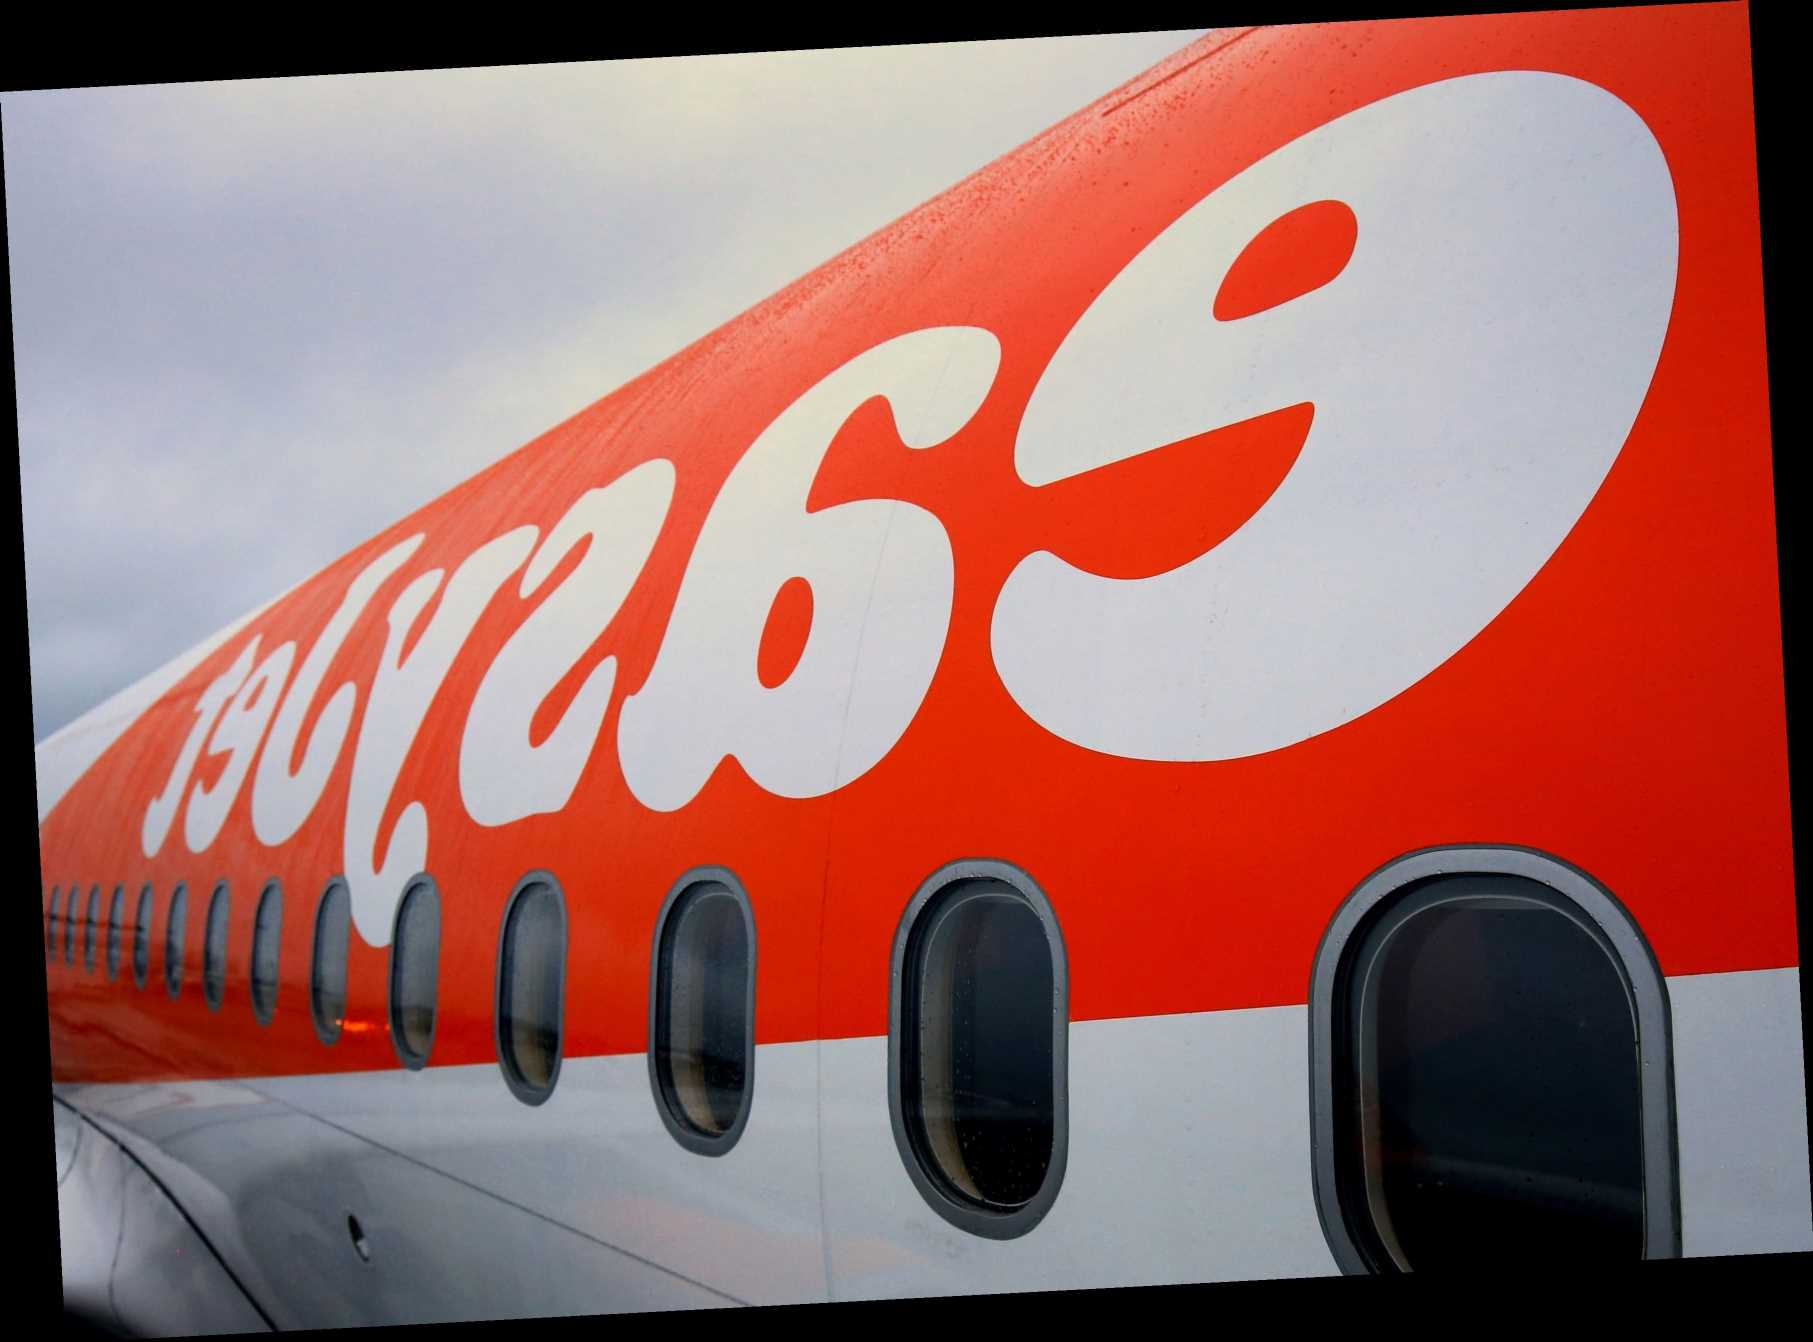 Easyjet extends credit vouchers due to expire in June by another six months